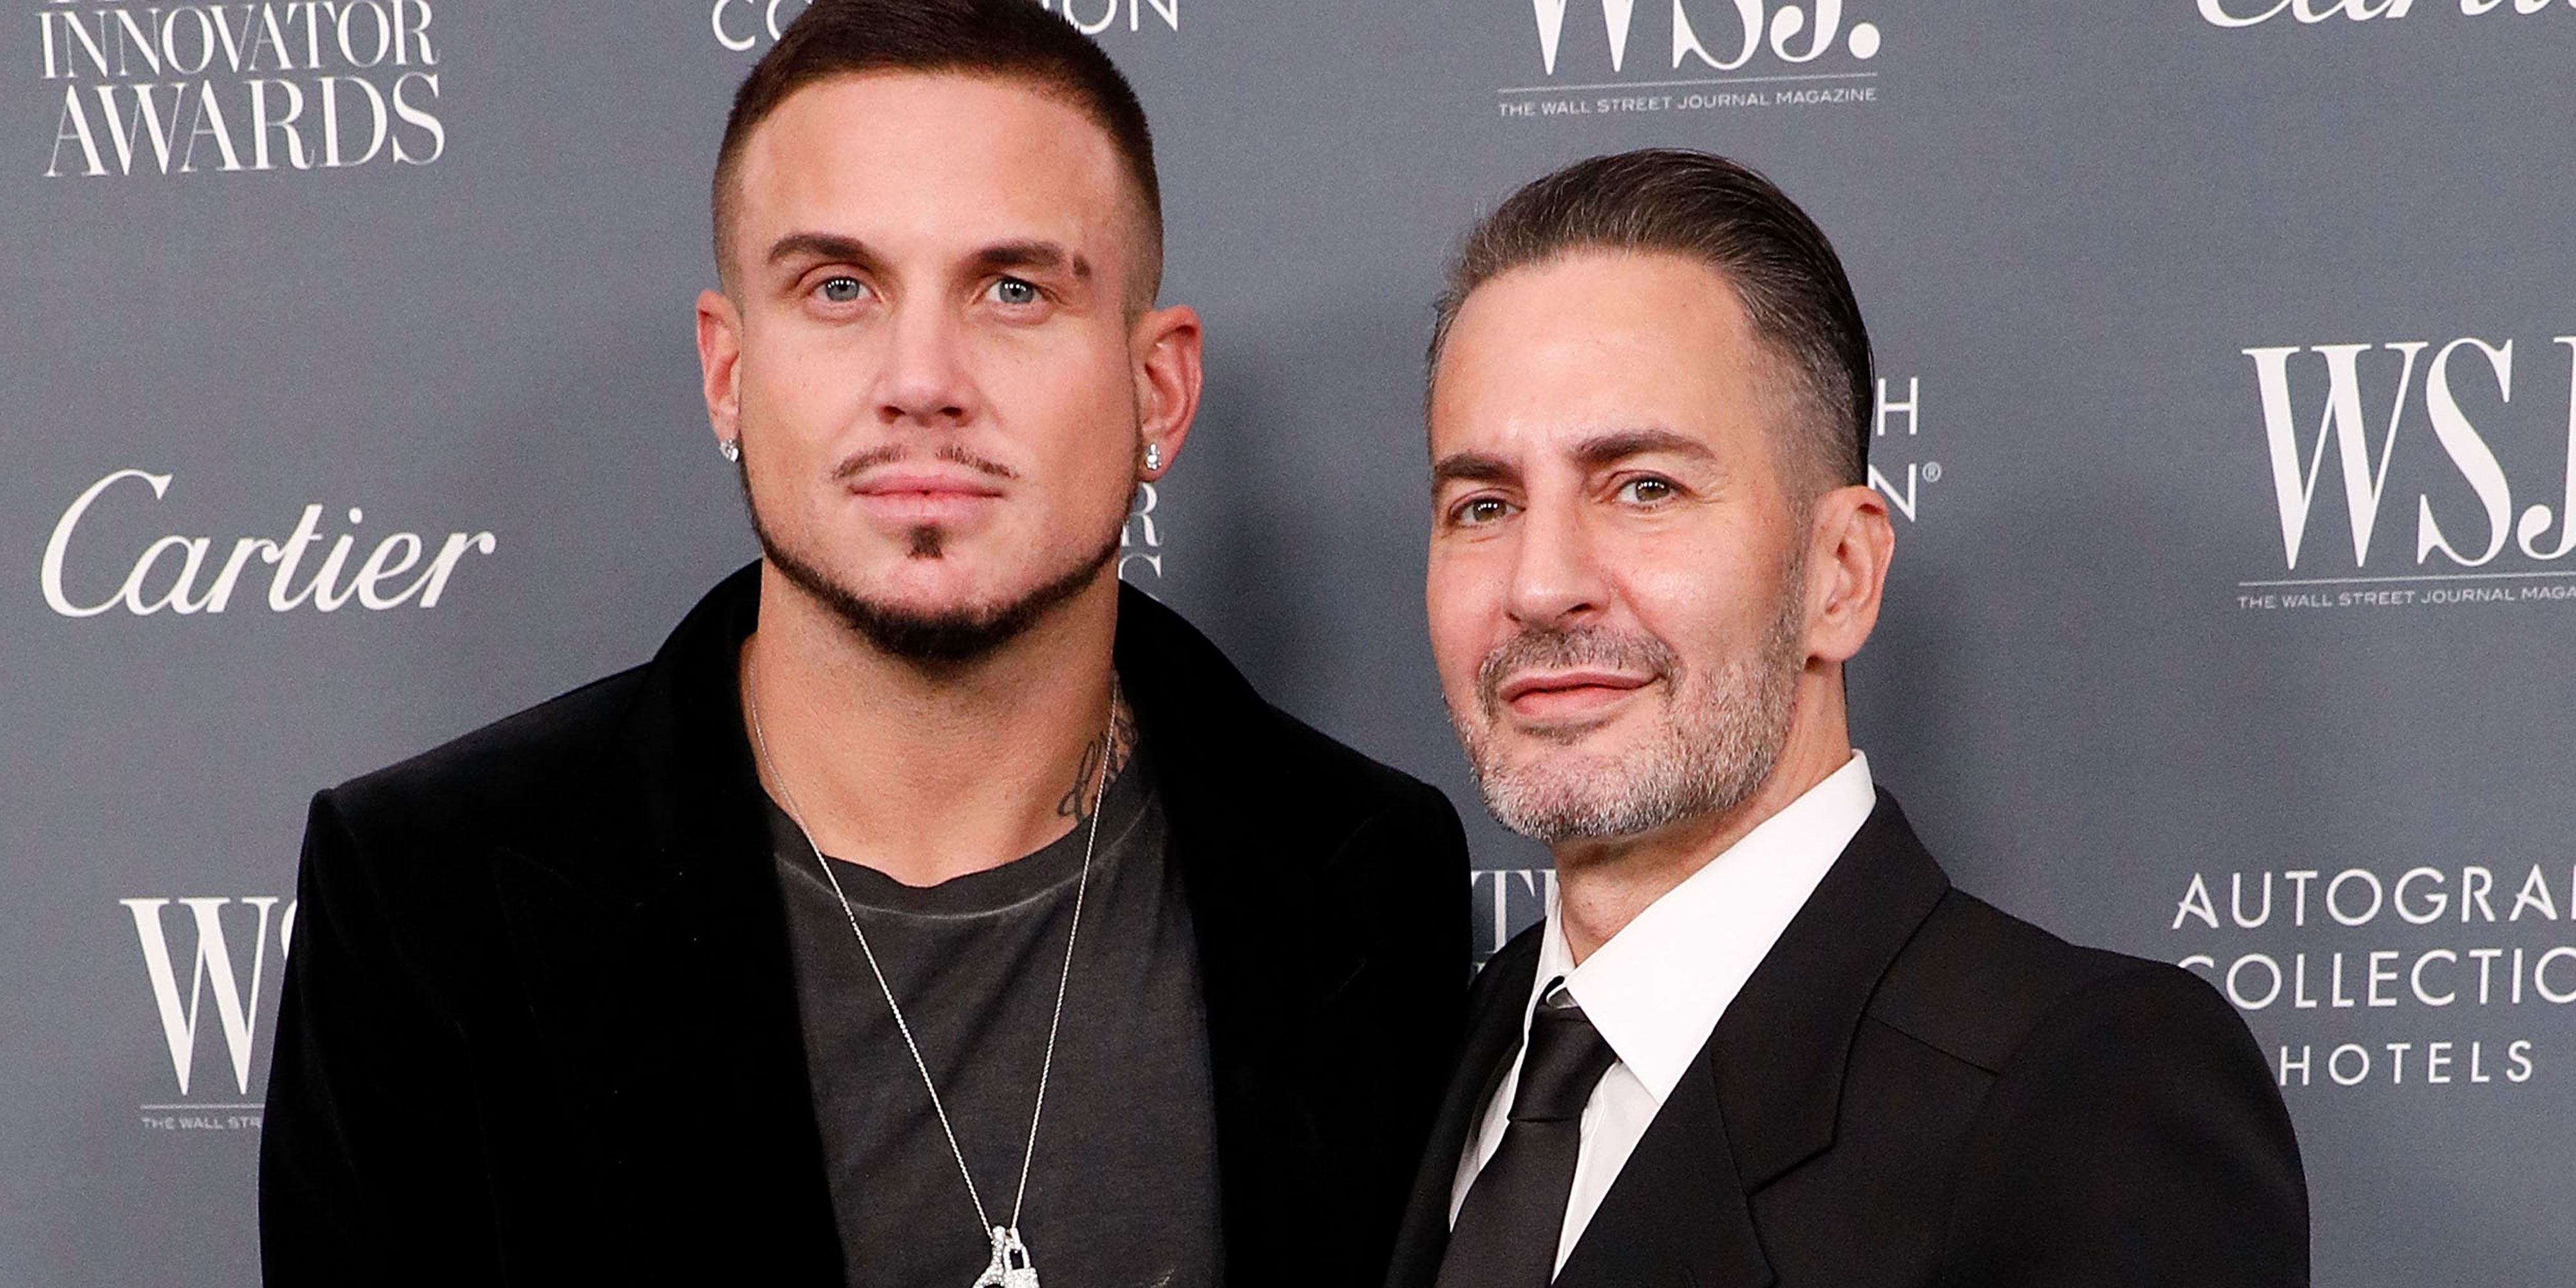 Marc Jacobs and Charly Defrancesco